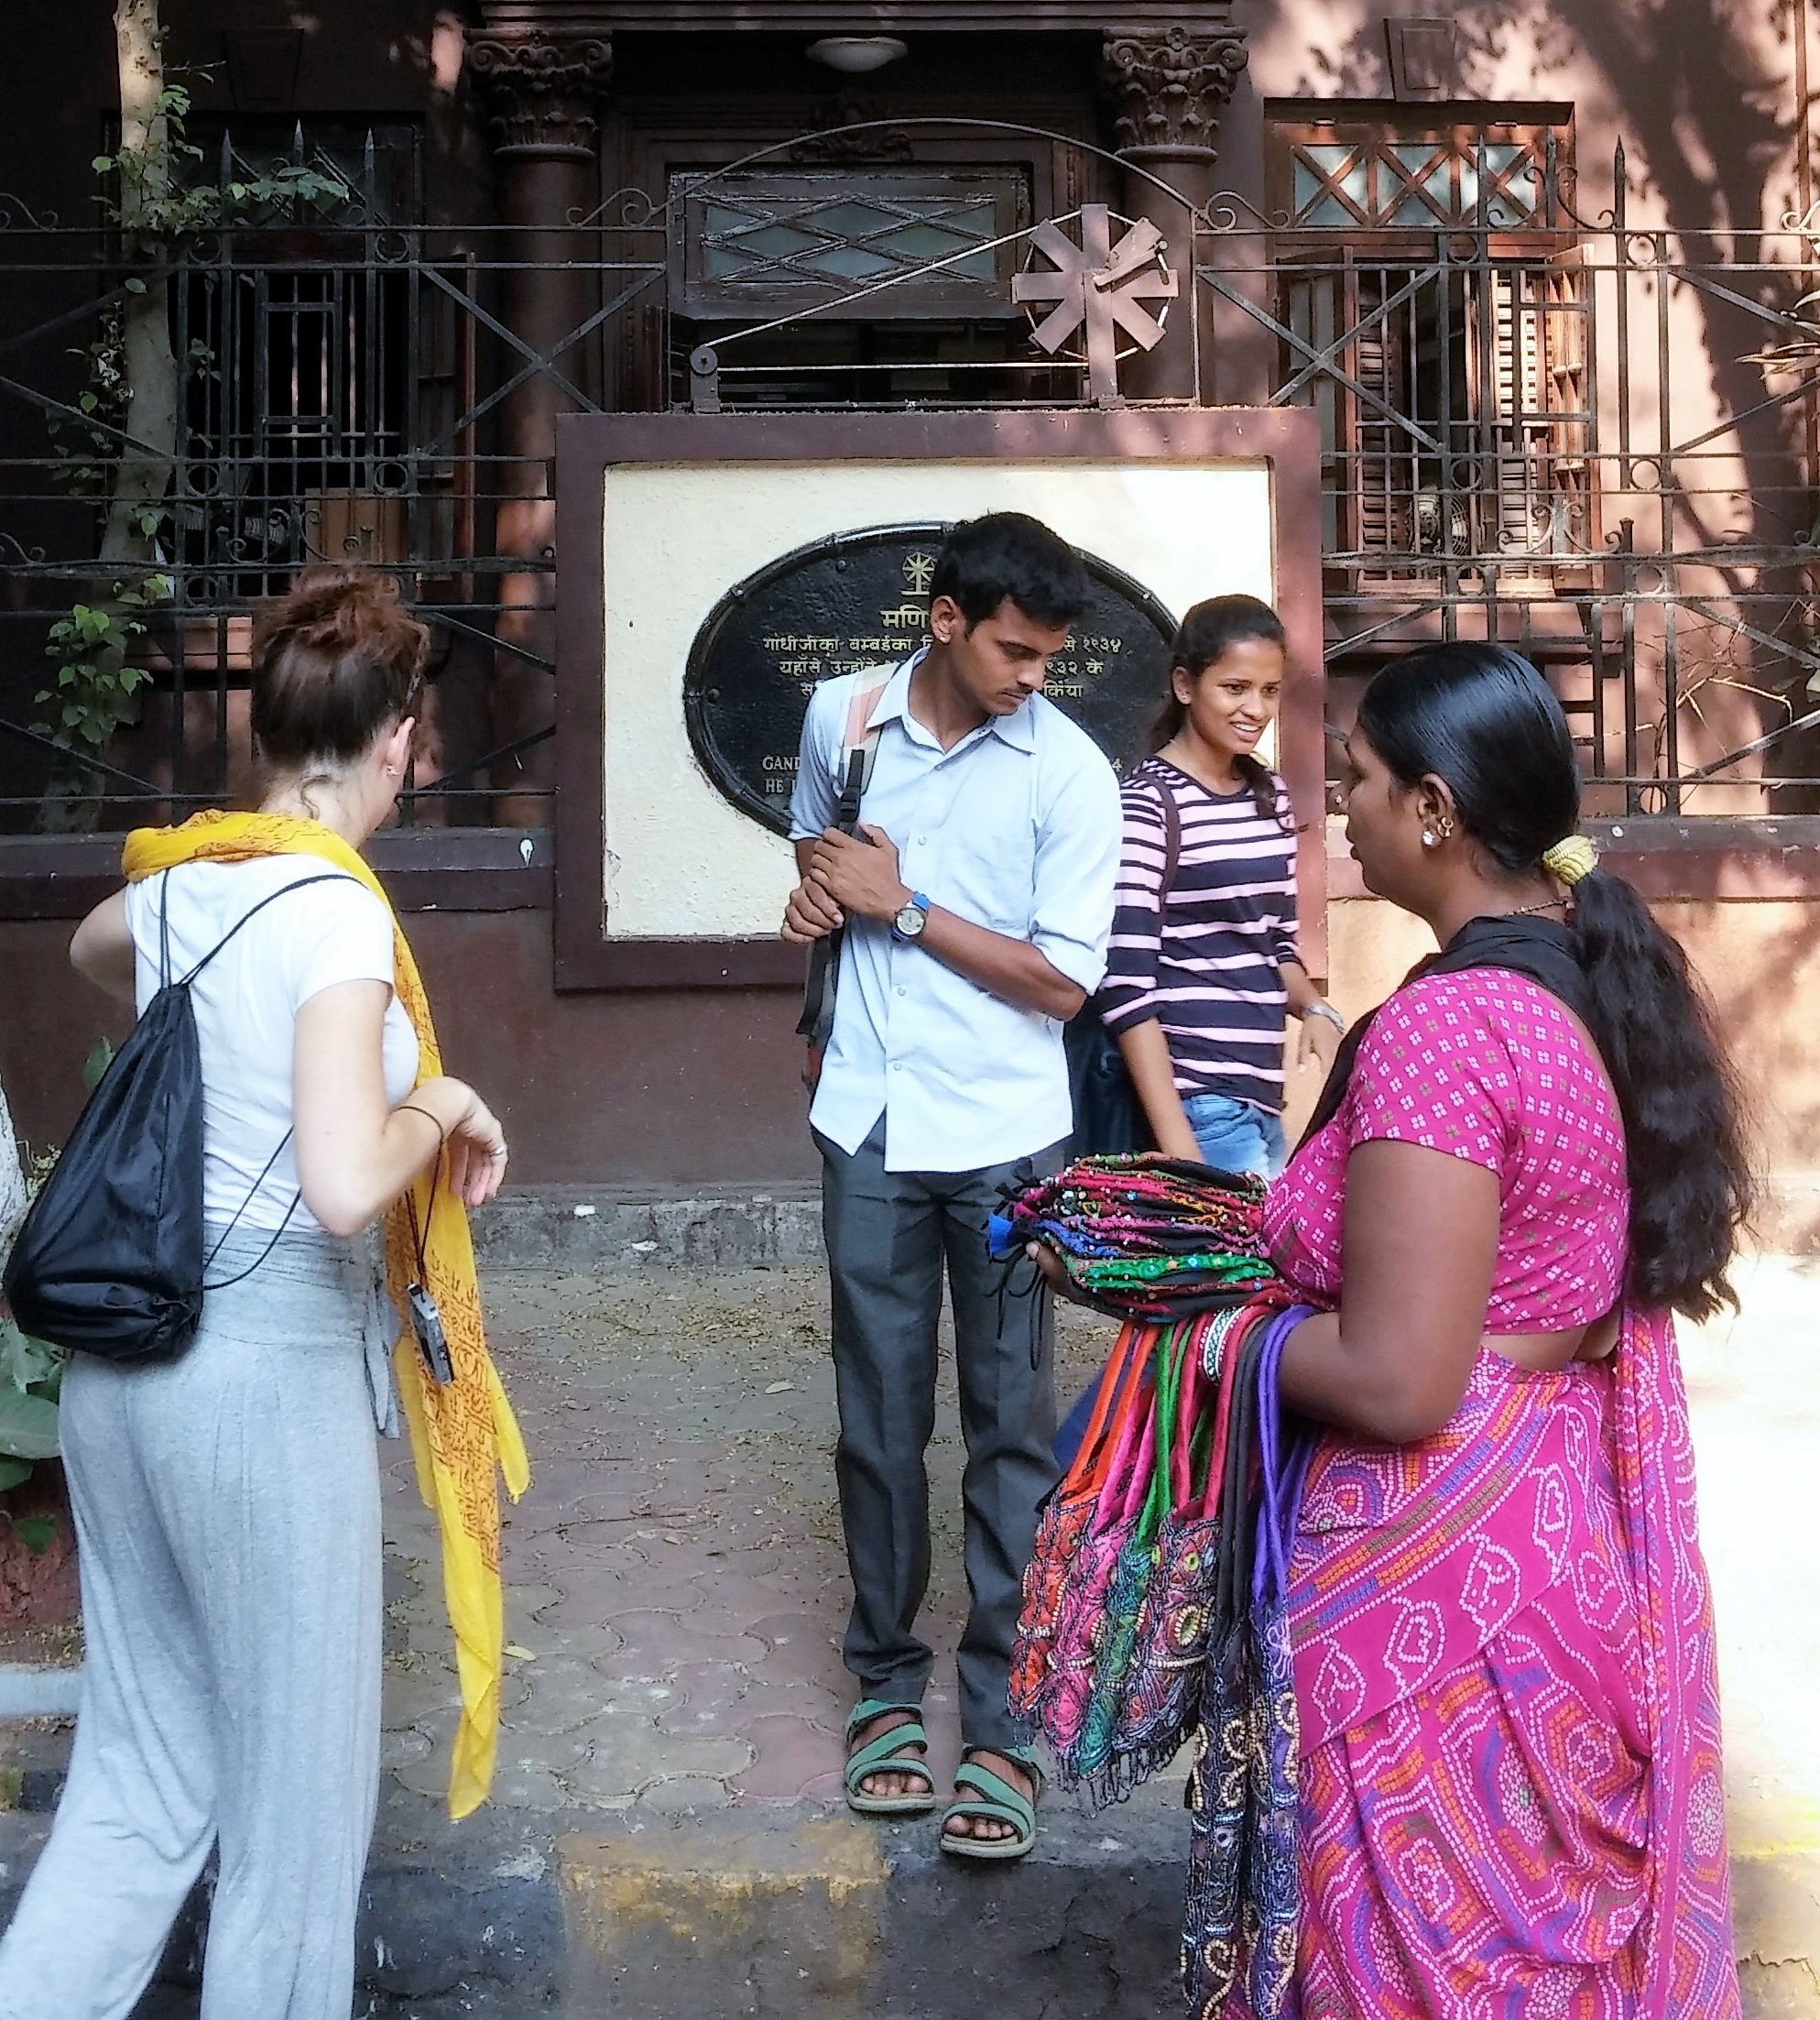 Guides at Gandhi's house